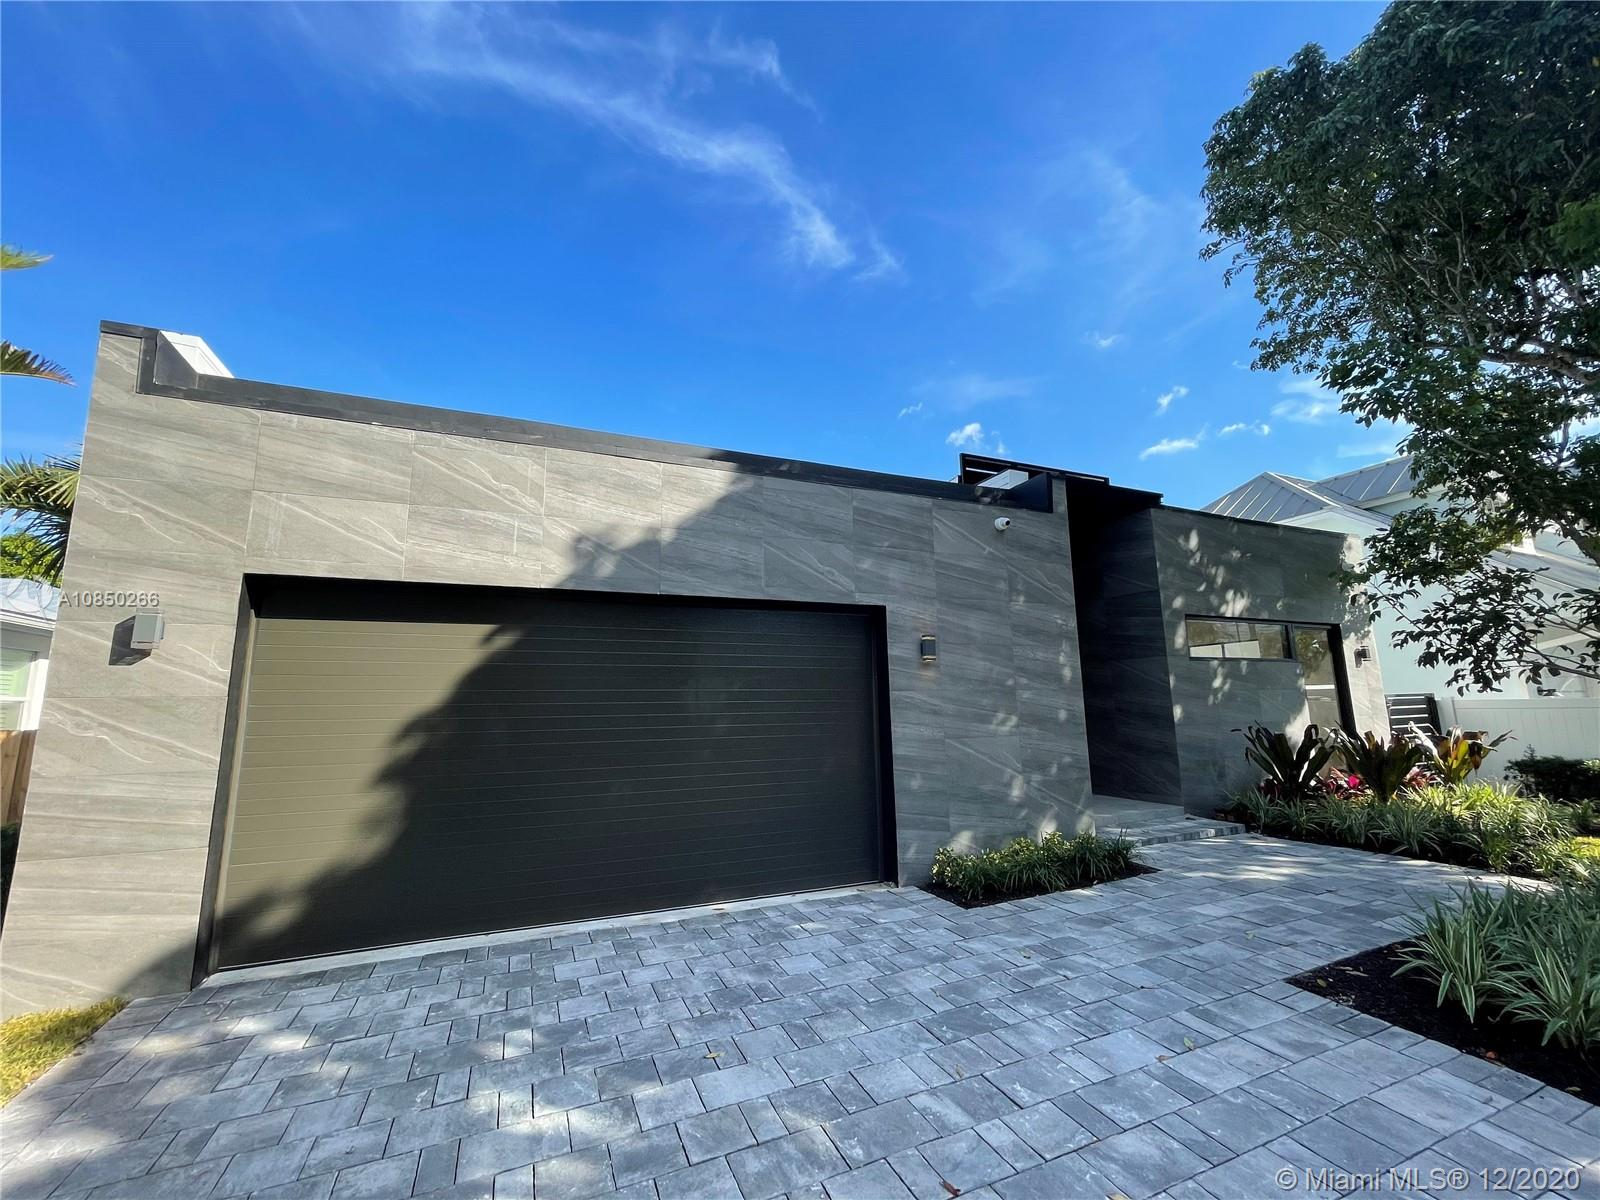 (Pictures posted are from the same model home built by the same builder in a different city)Spectacular Modern home, 3 Bedroom (+ Office) 3 Bathroom, high ceilings stainless steel appliances, large sized pool located conveniently ten minutes from beach, ten minutes from airport, Lot area 8100 S.FInterior S.F total 3723